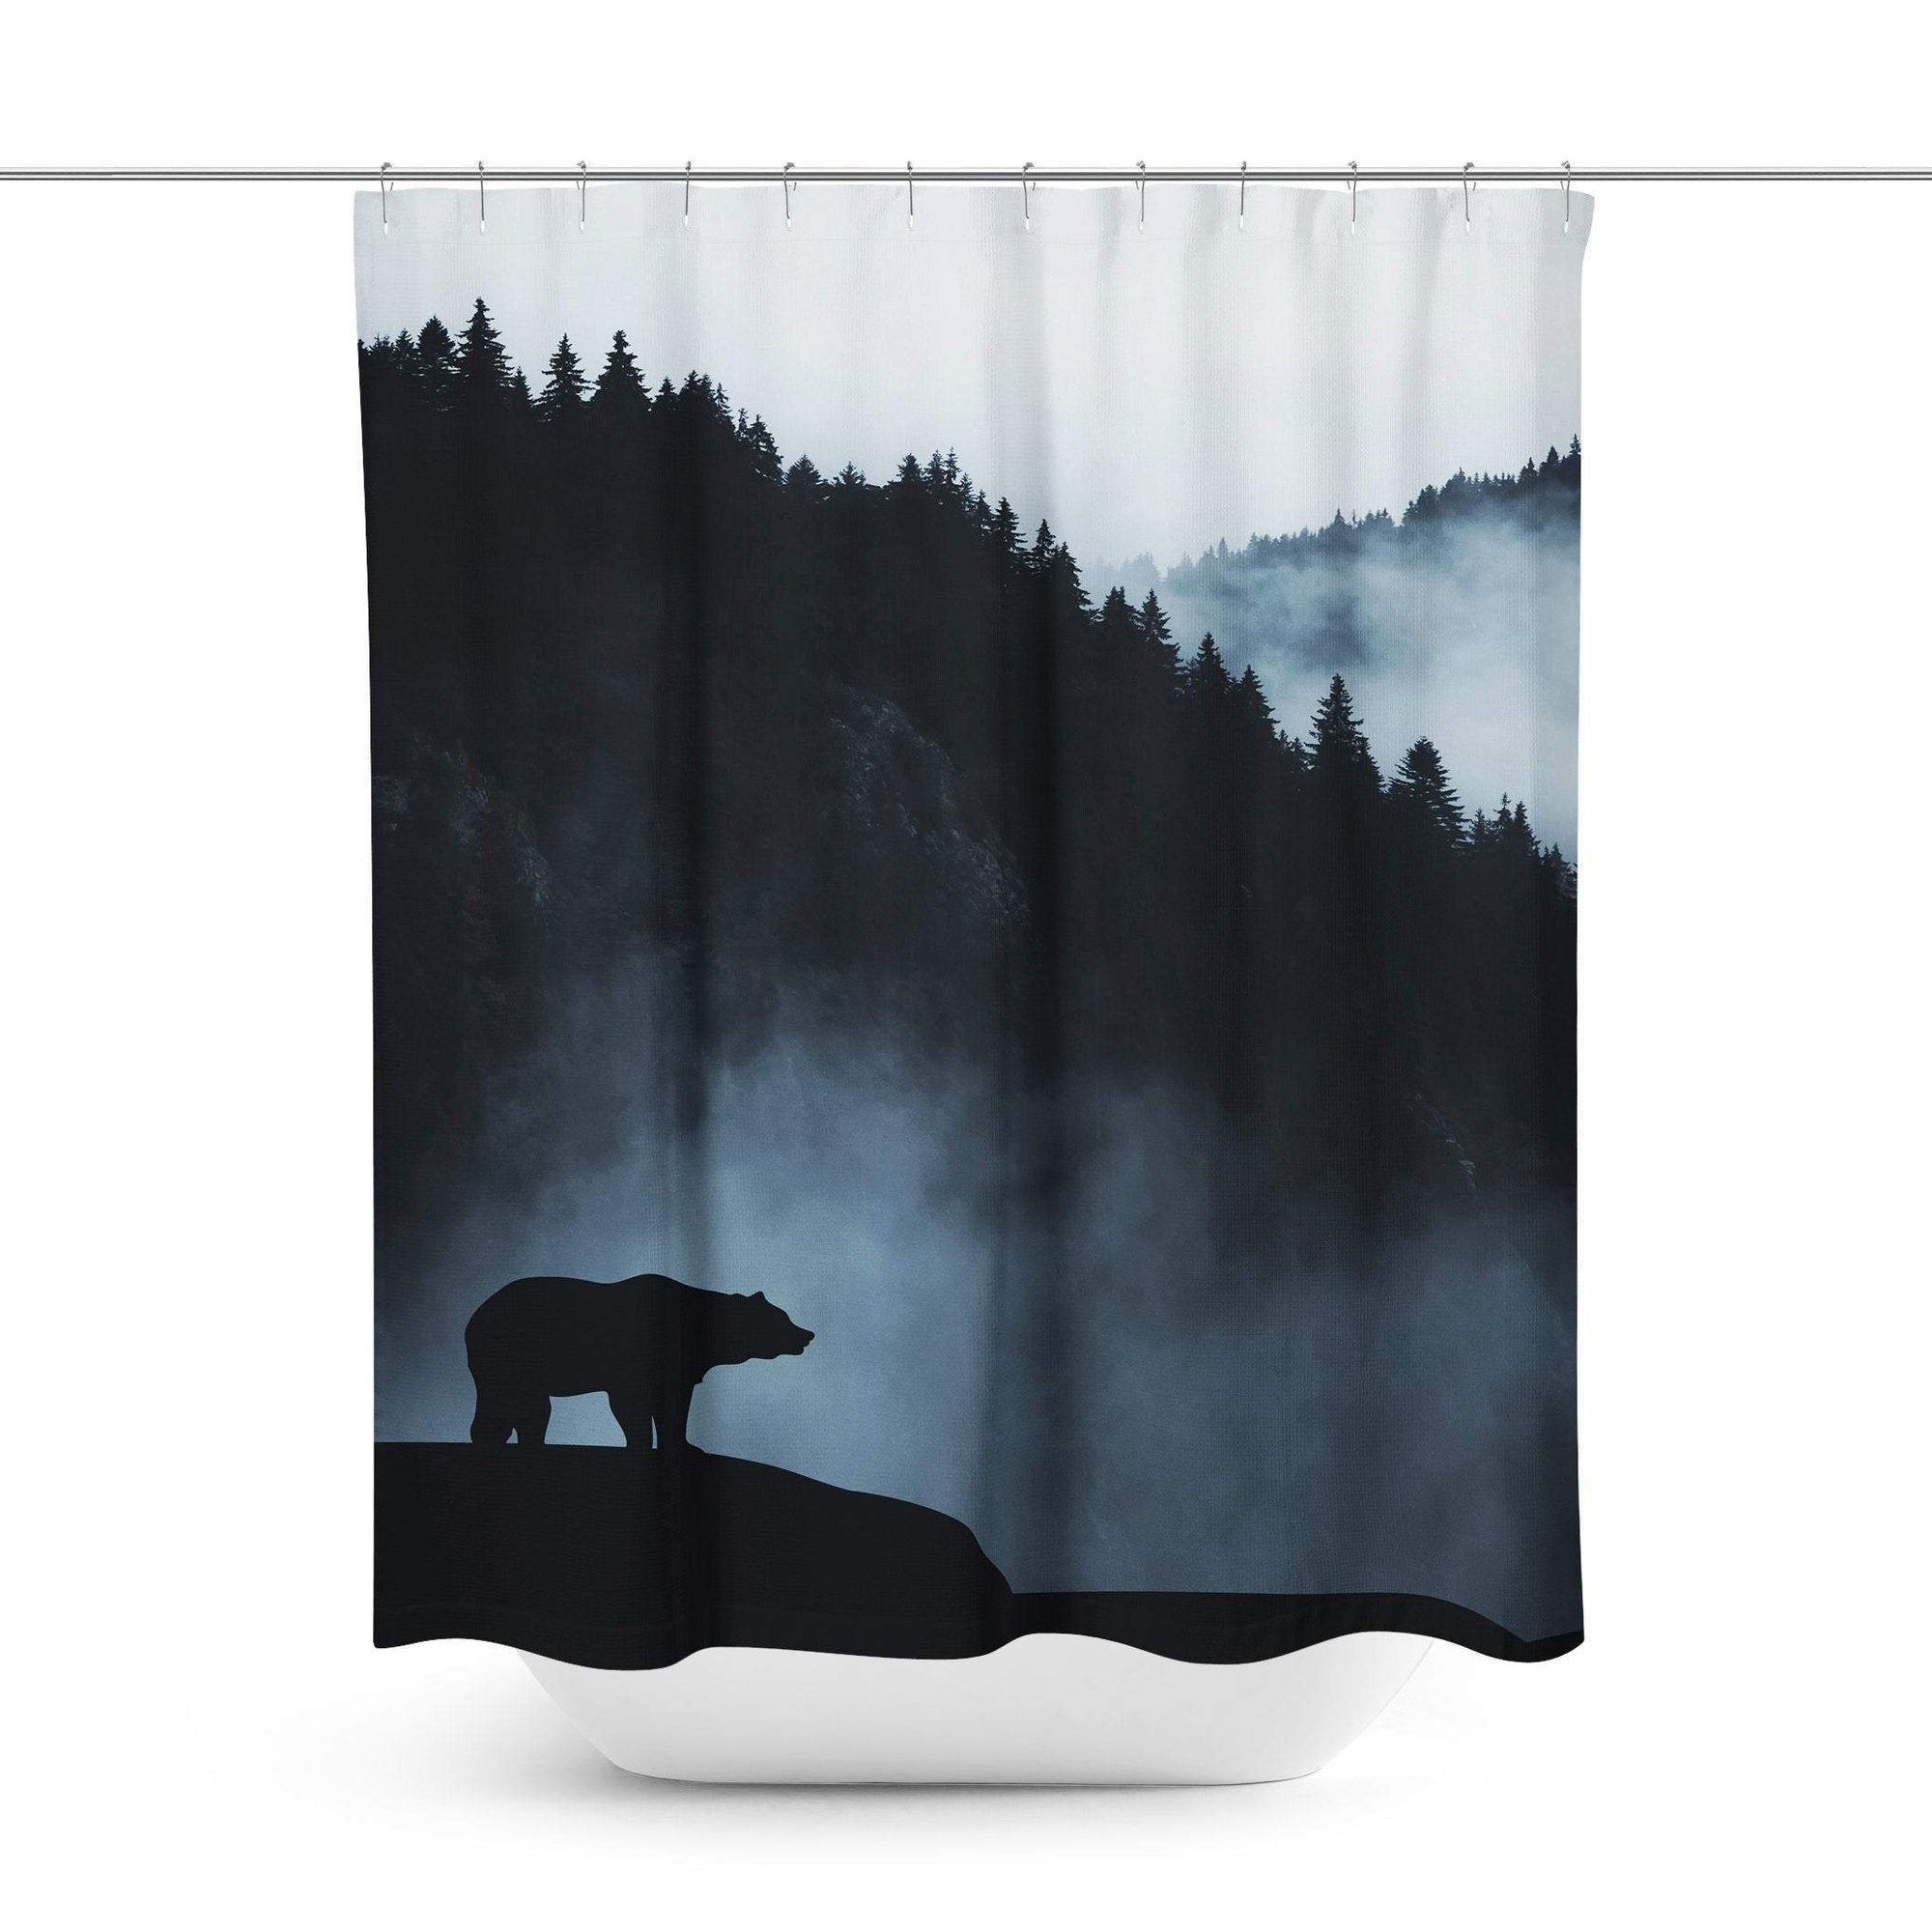 Grizzly Bear Shower Curtain-W.FRANCIS